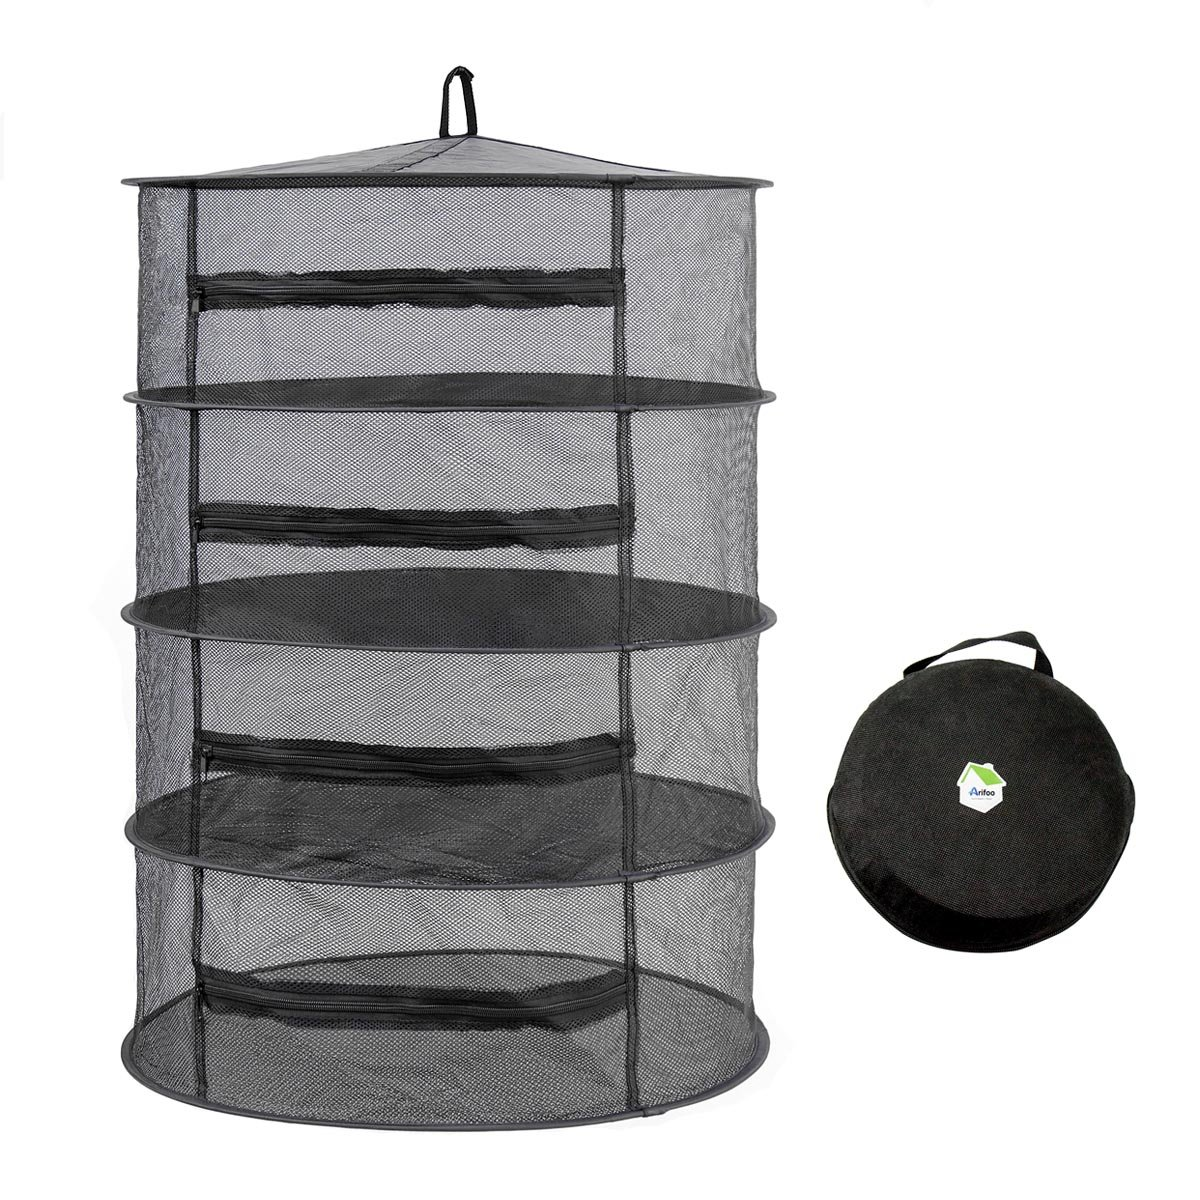 Arifoo Herb Drying Rack Hanging Drying Racks 4 Layer Collapsible Herb Drying Rack Hanging with Zipper Design (Black)